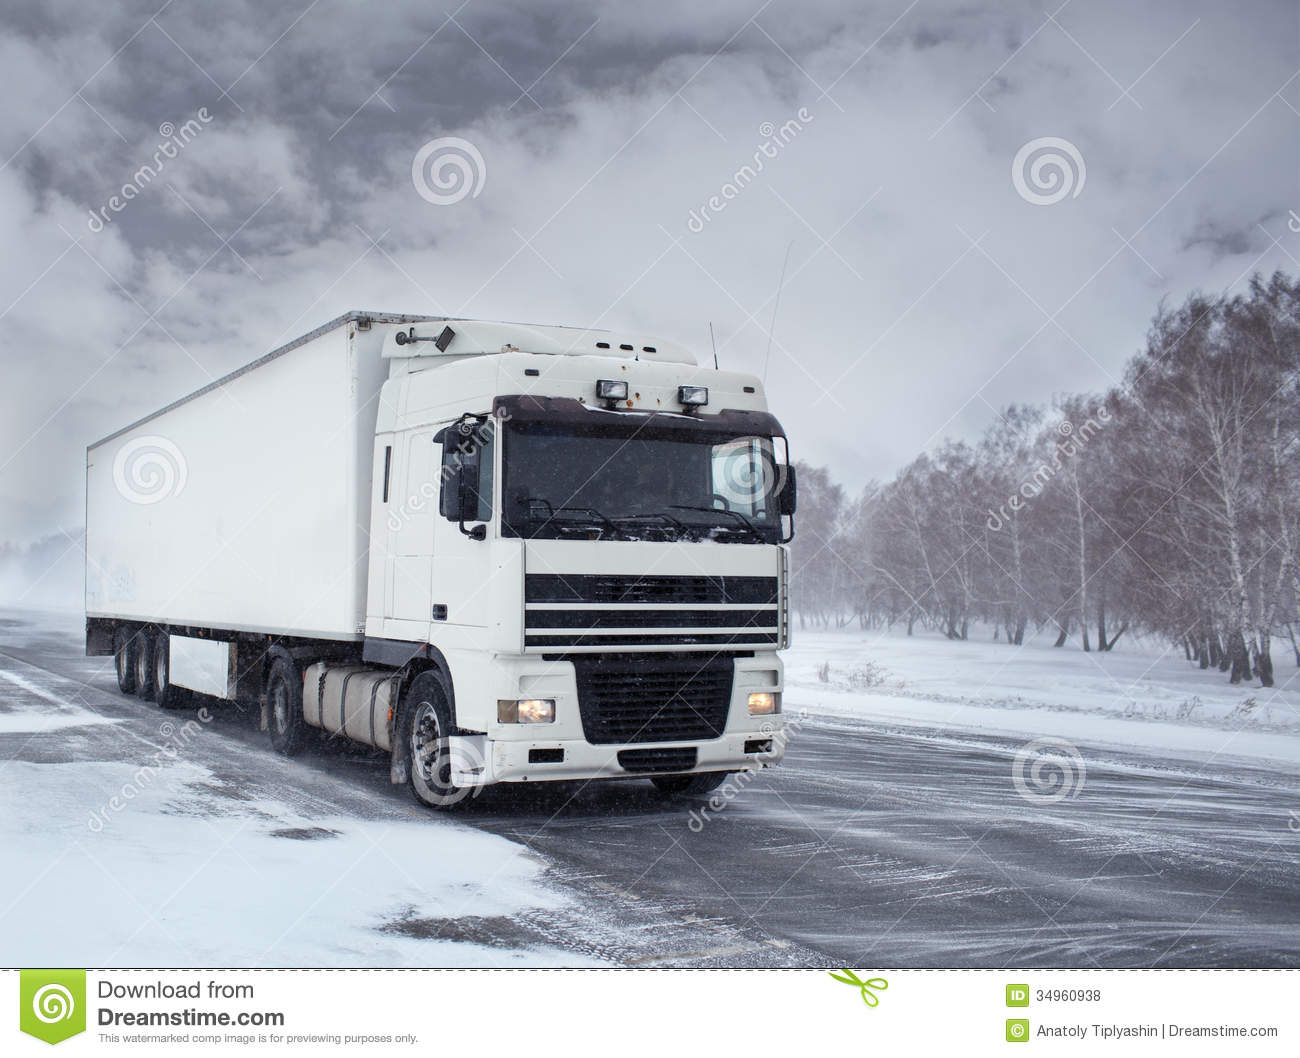 a description of intermodal freight transport which refers to the transportation of goods in a car Wellington 6141 keywords: co2 emissions, coastal shipping, container tracking, goods damage, impact loads, intermodal transfers, rail, road transport.